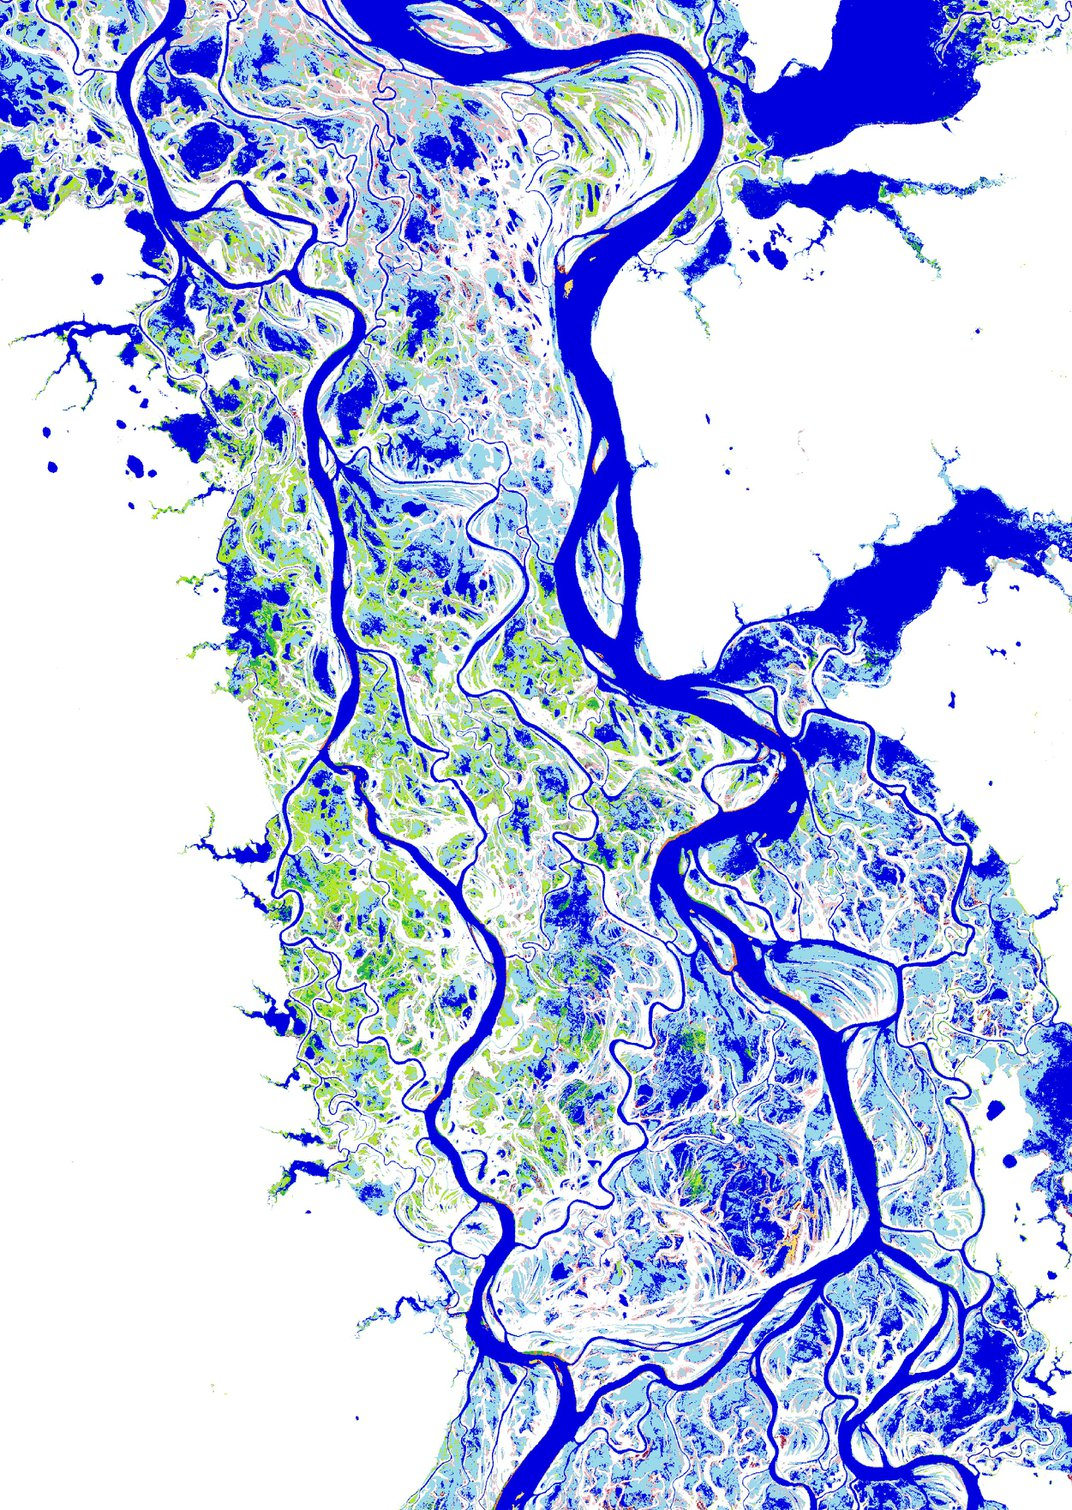 High-Resolution Satellite Images Capture Stunning View of Earth's Changing Waters